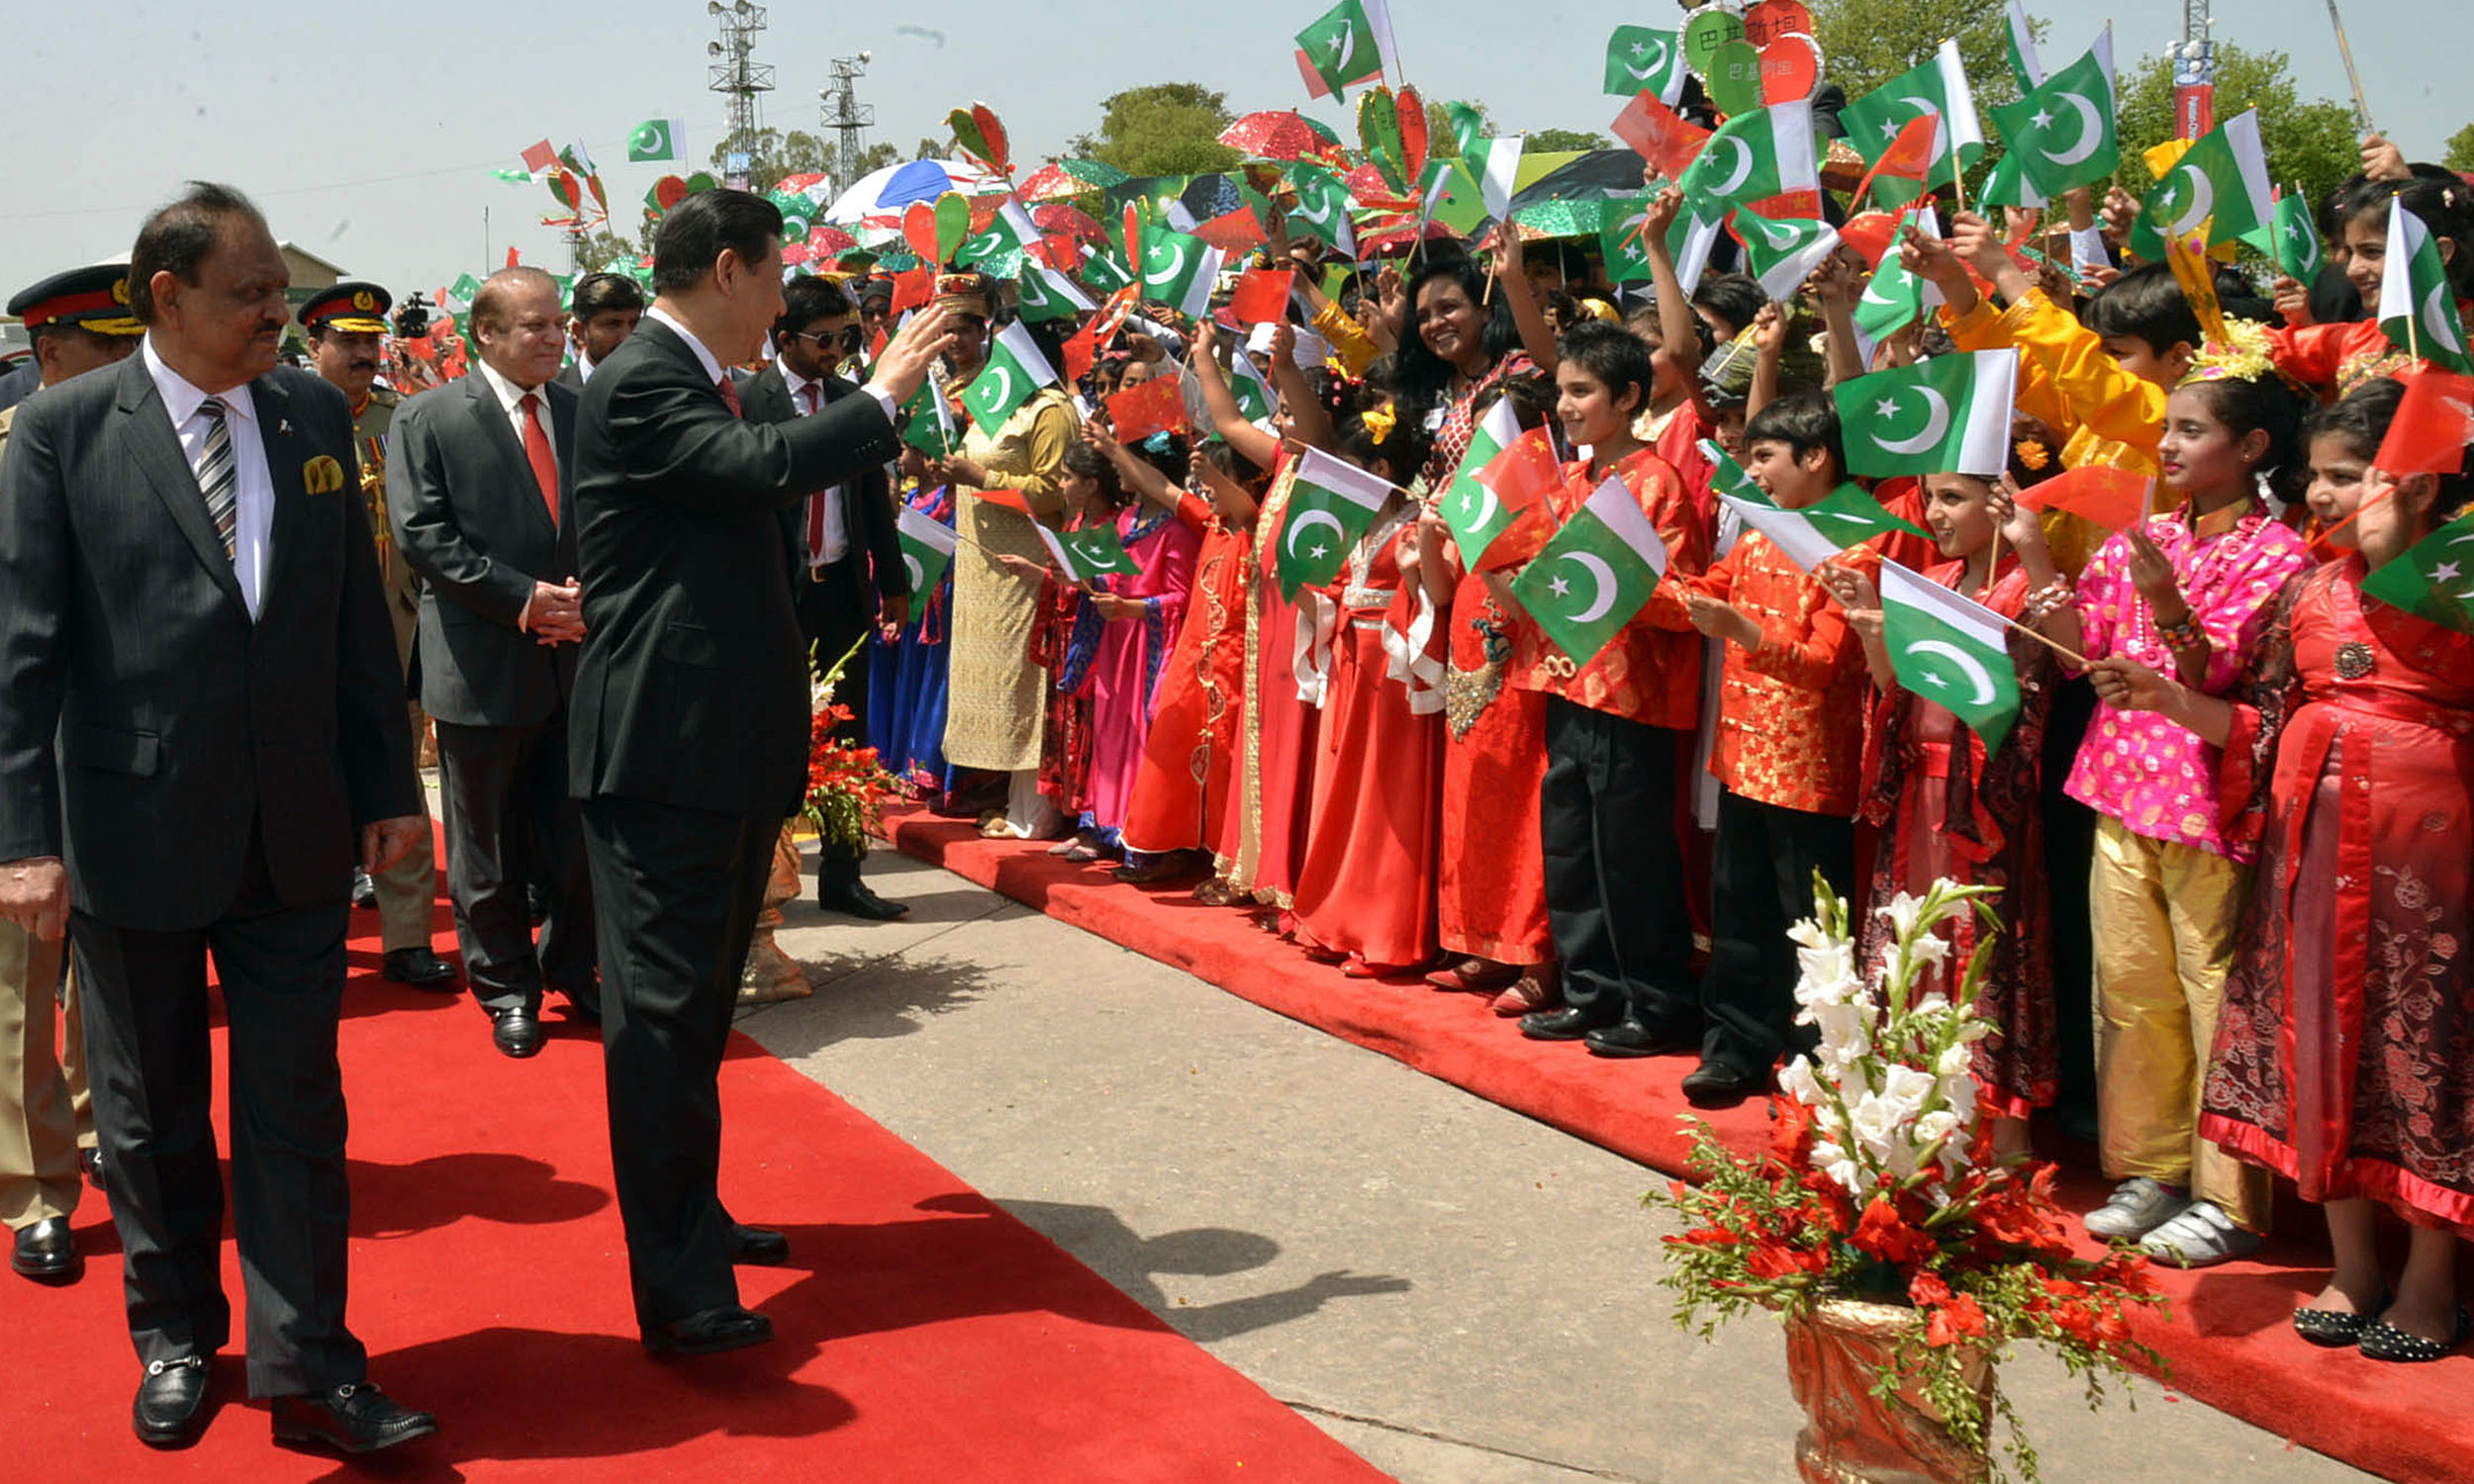 Chinese President Xi Jinping in Islamabad in 2015 | Tanveer Shehzad, White Star